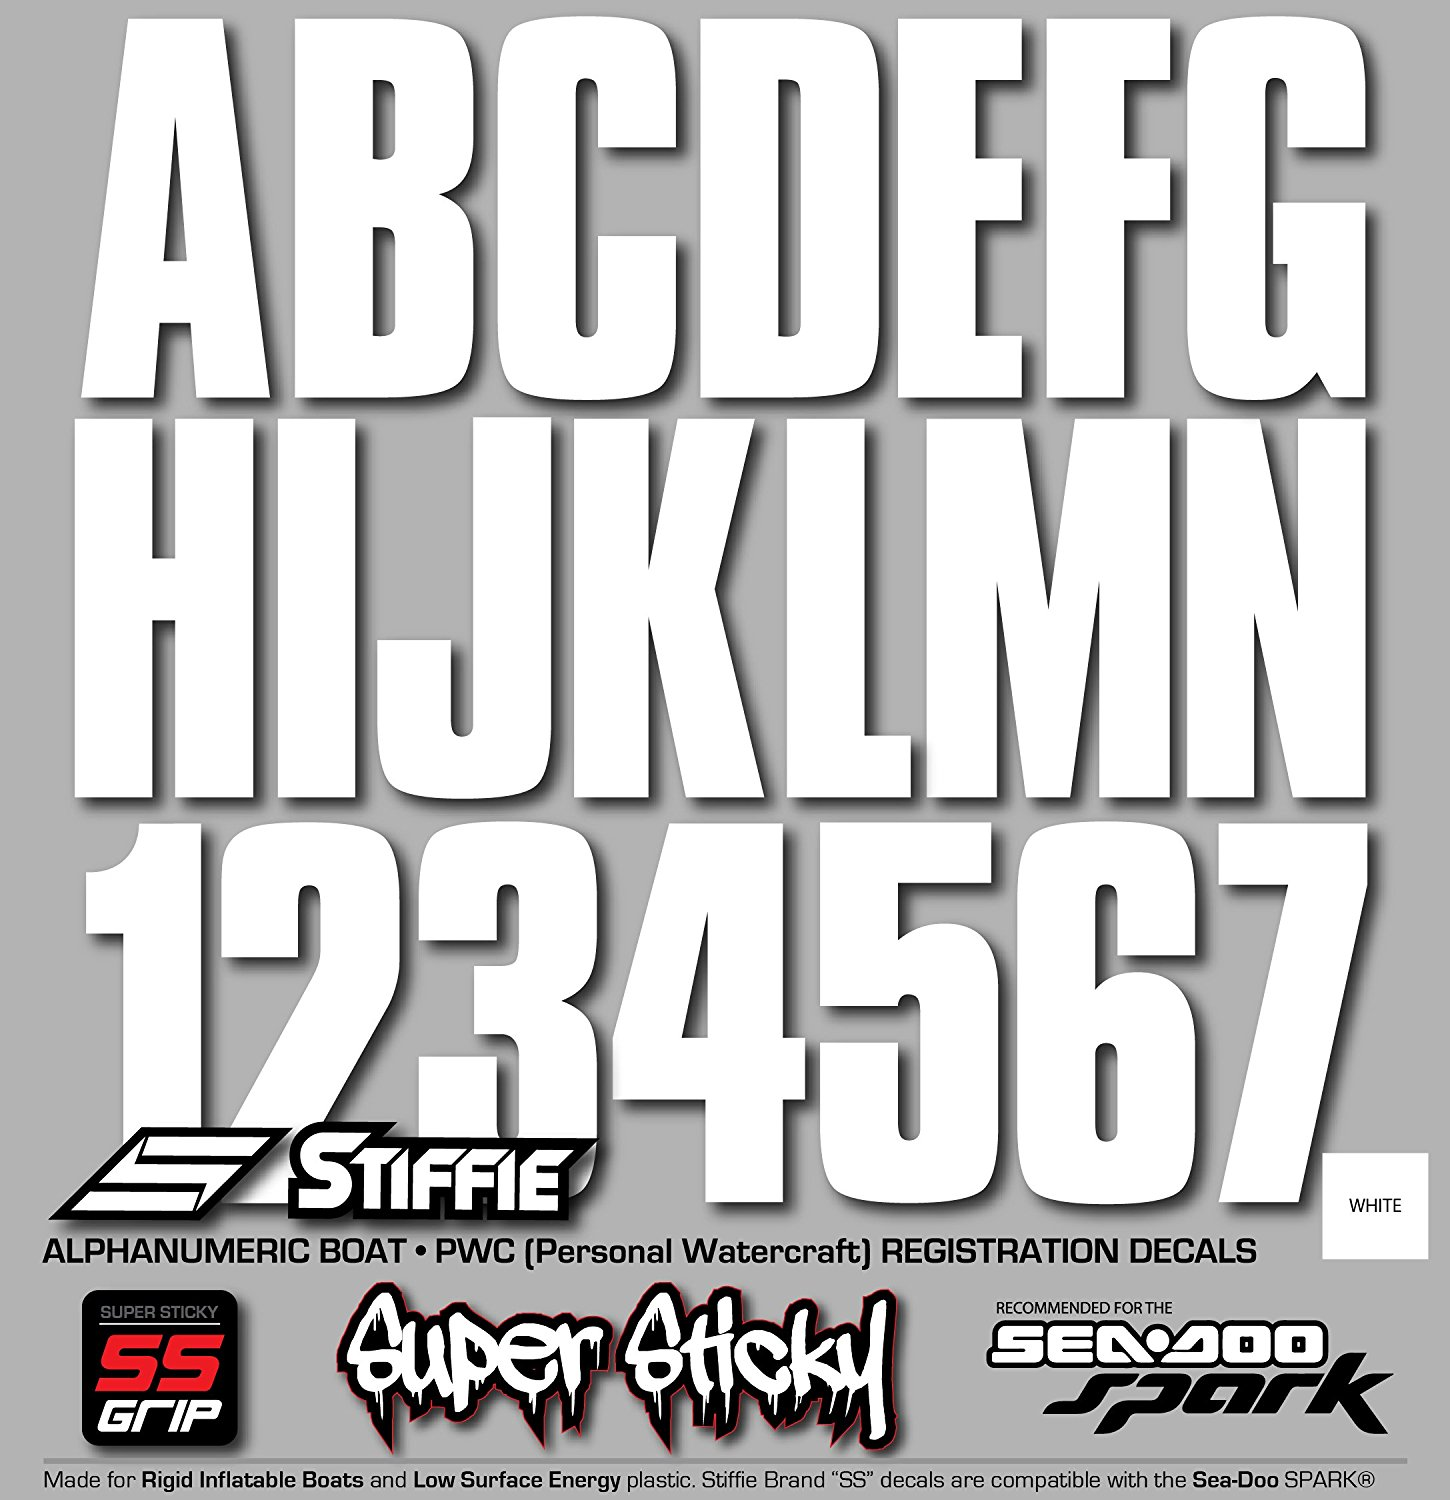 STIFFIE Uniline White Super Sticky 3 Alpha Numeric Registration Identification Numbers Stickers Decals for Sea-Doo Spark Ribs PWC and Boats. Hypalon//PVC Inflatable Boats